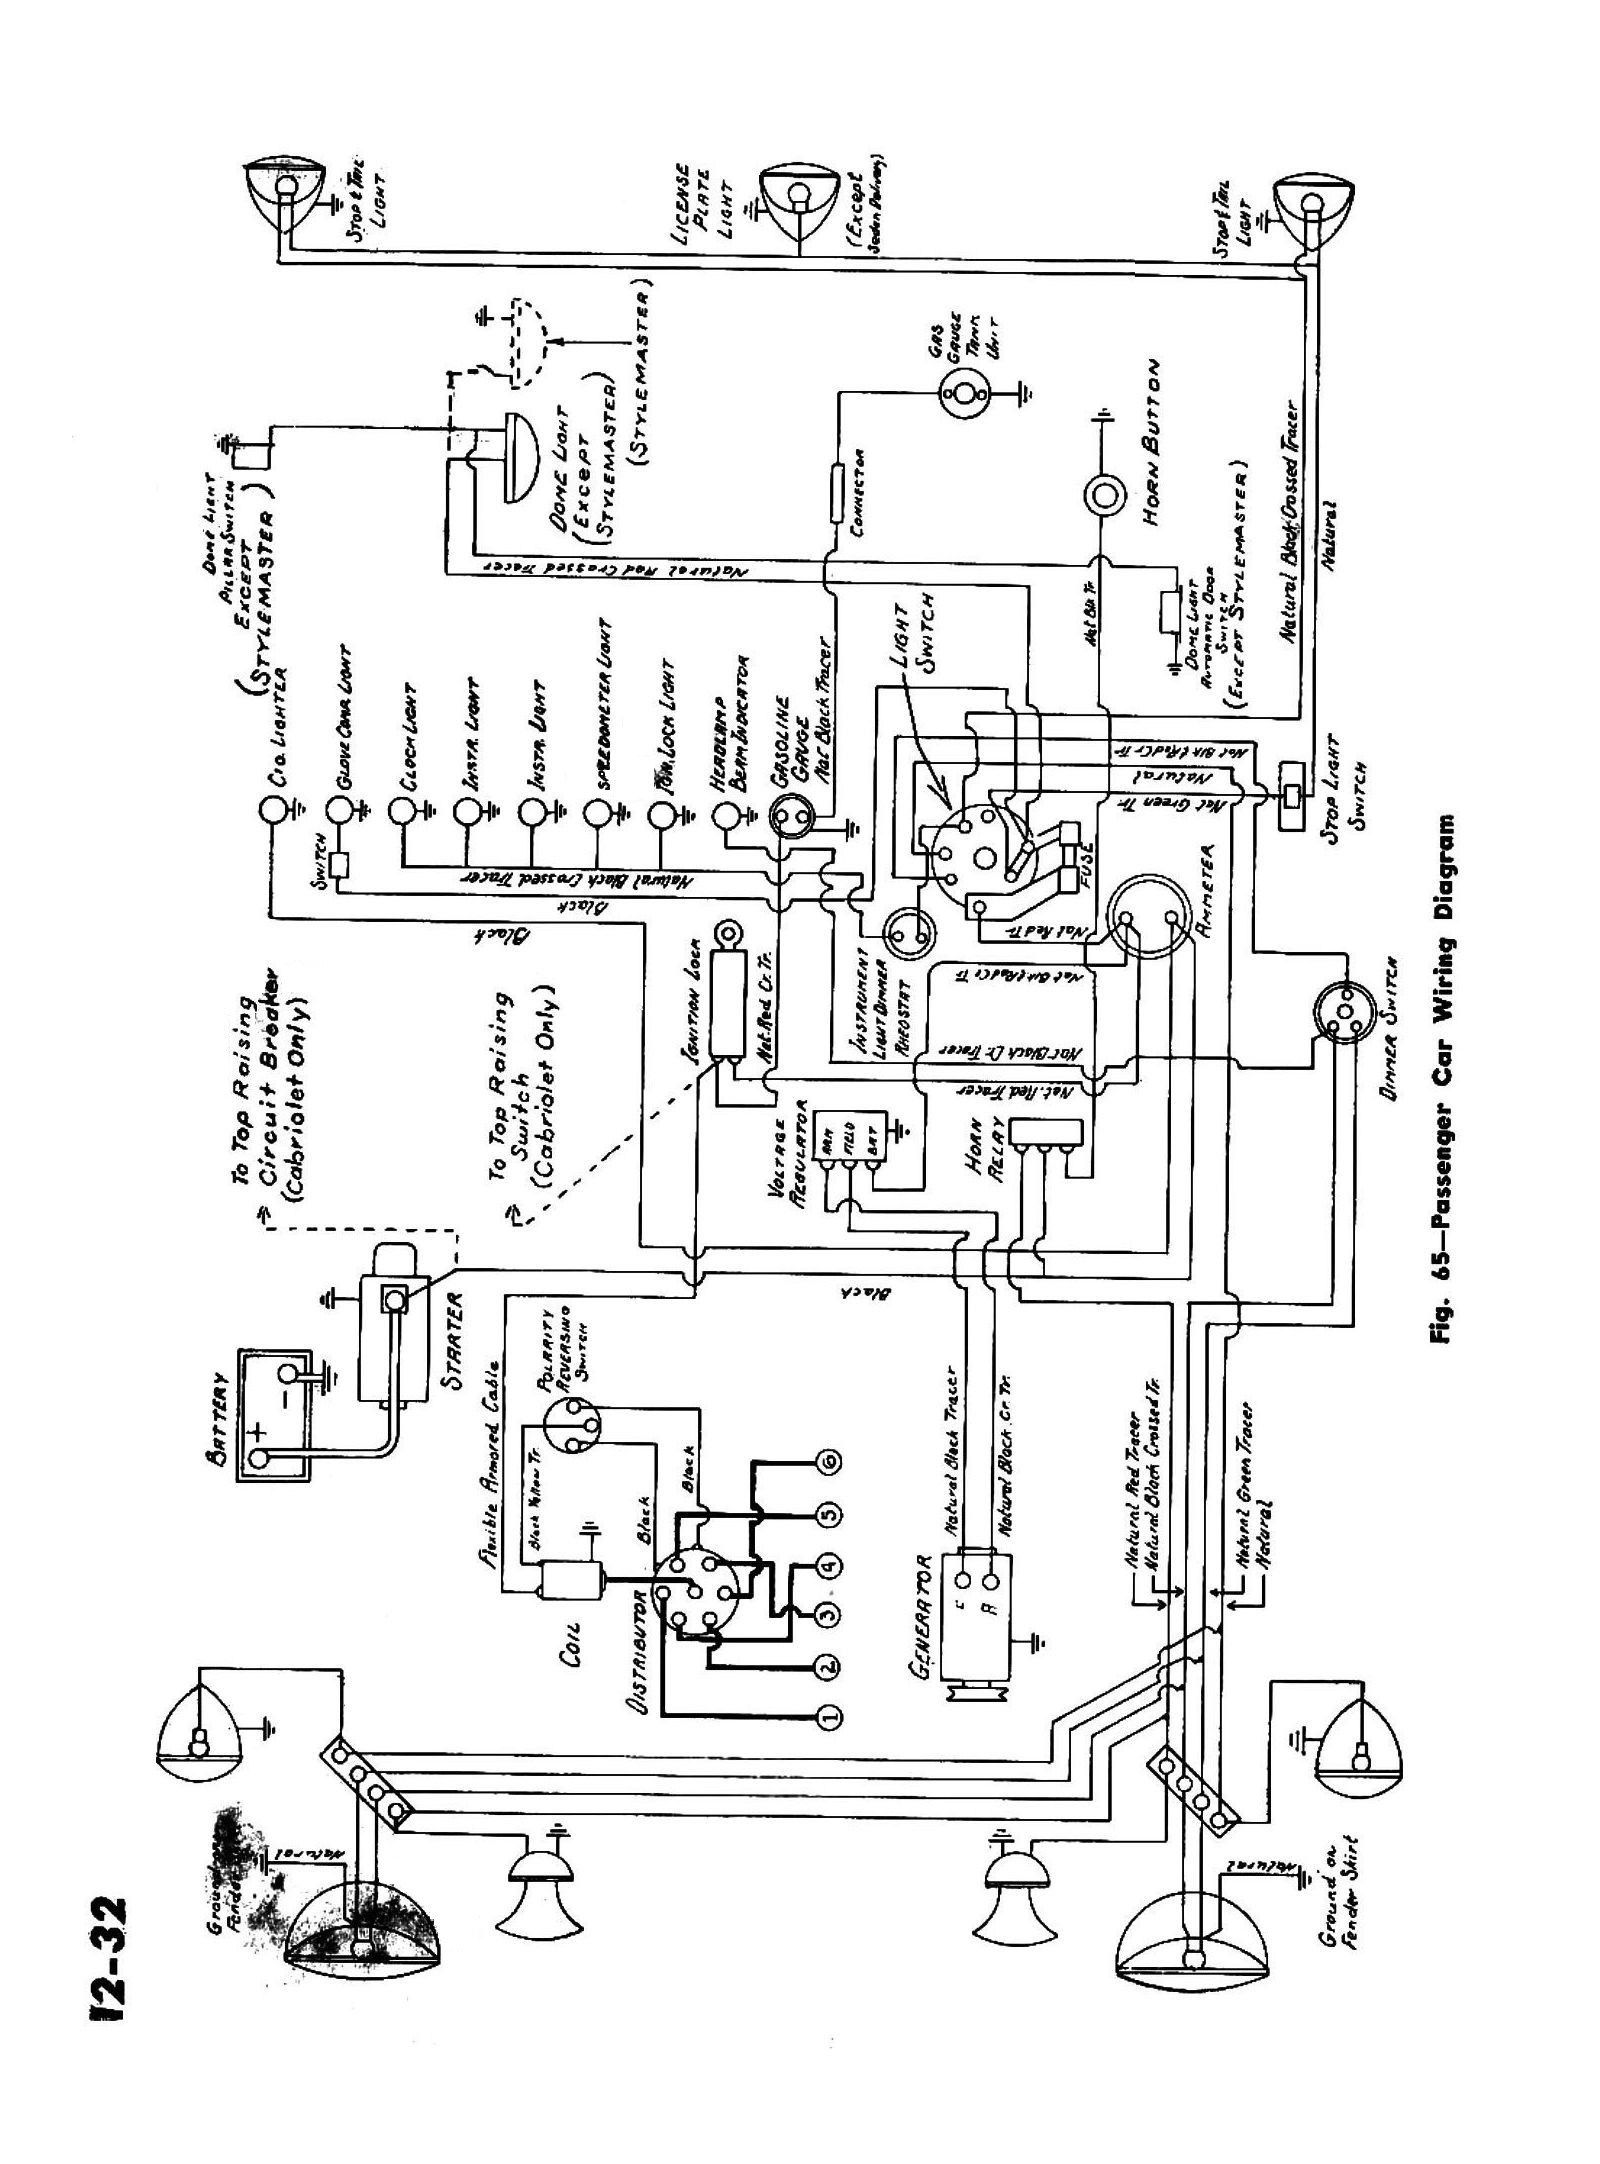 Pin Di House Wiring Diagram Inverter